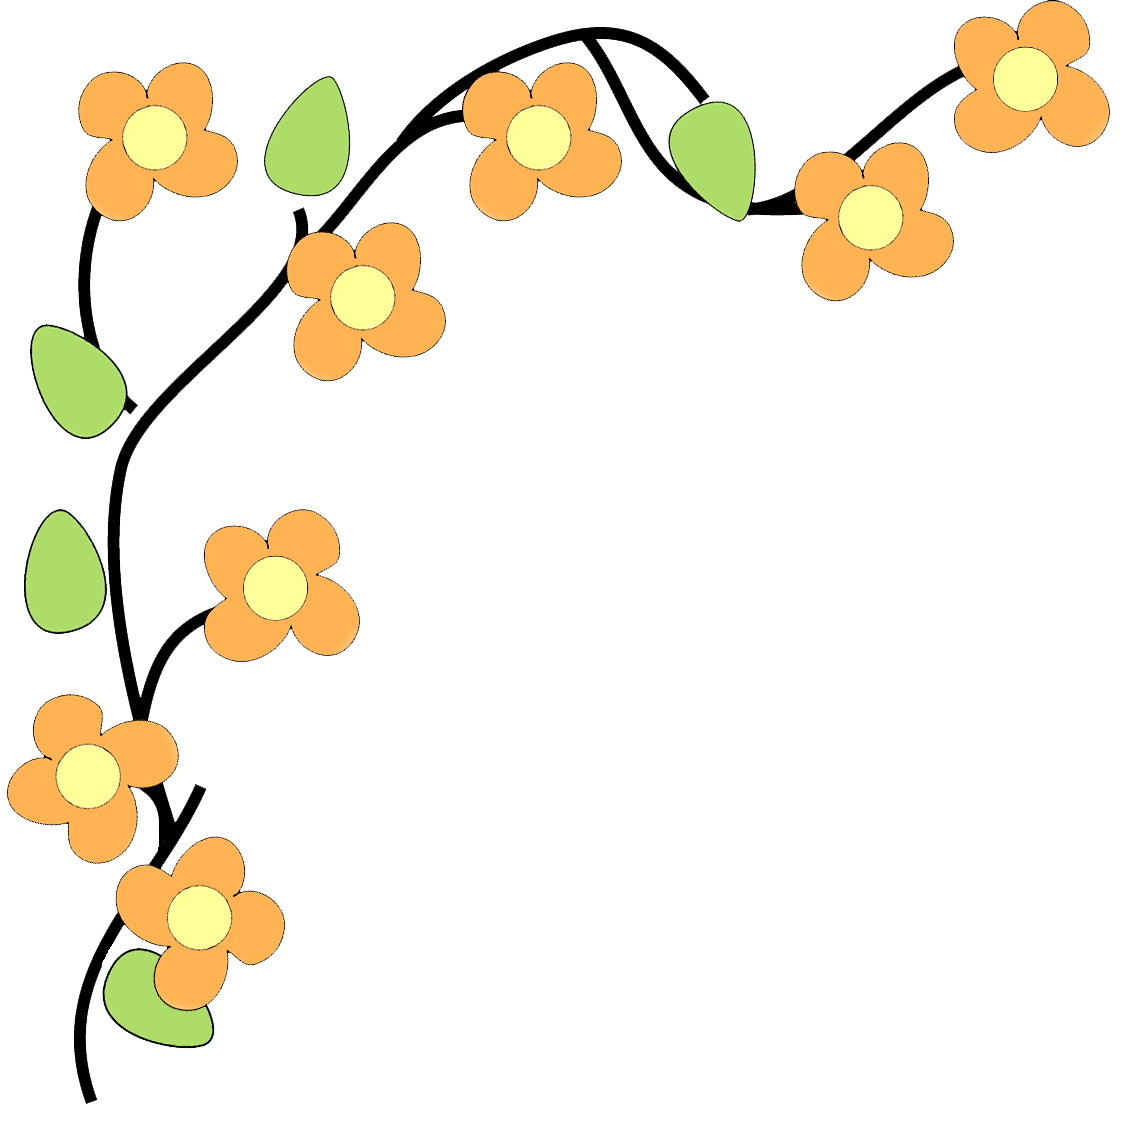 Blossom clipart border design. Free cliparts flower download